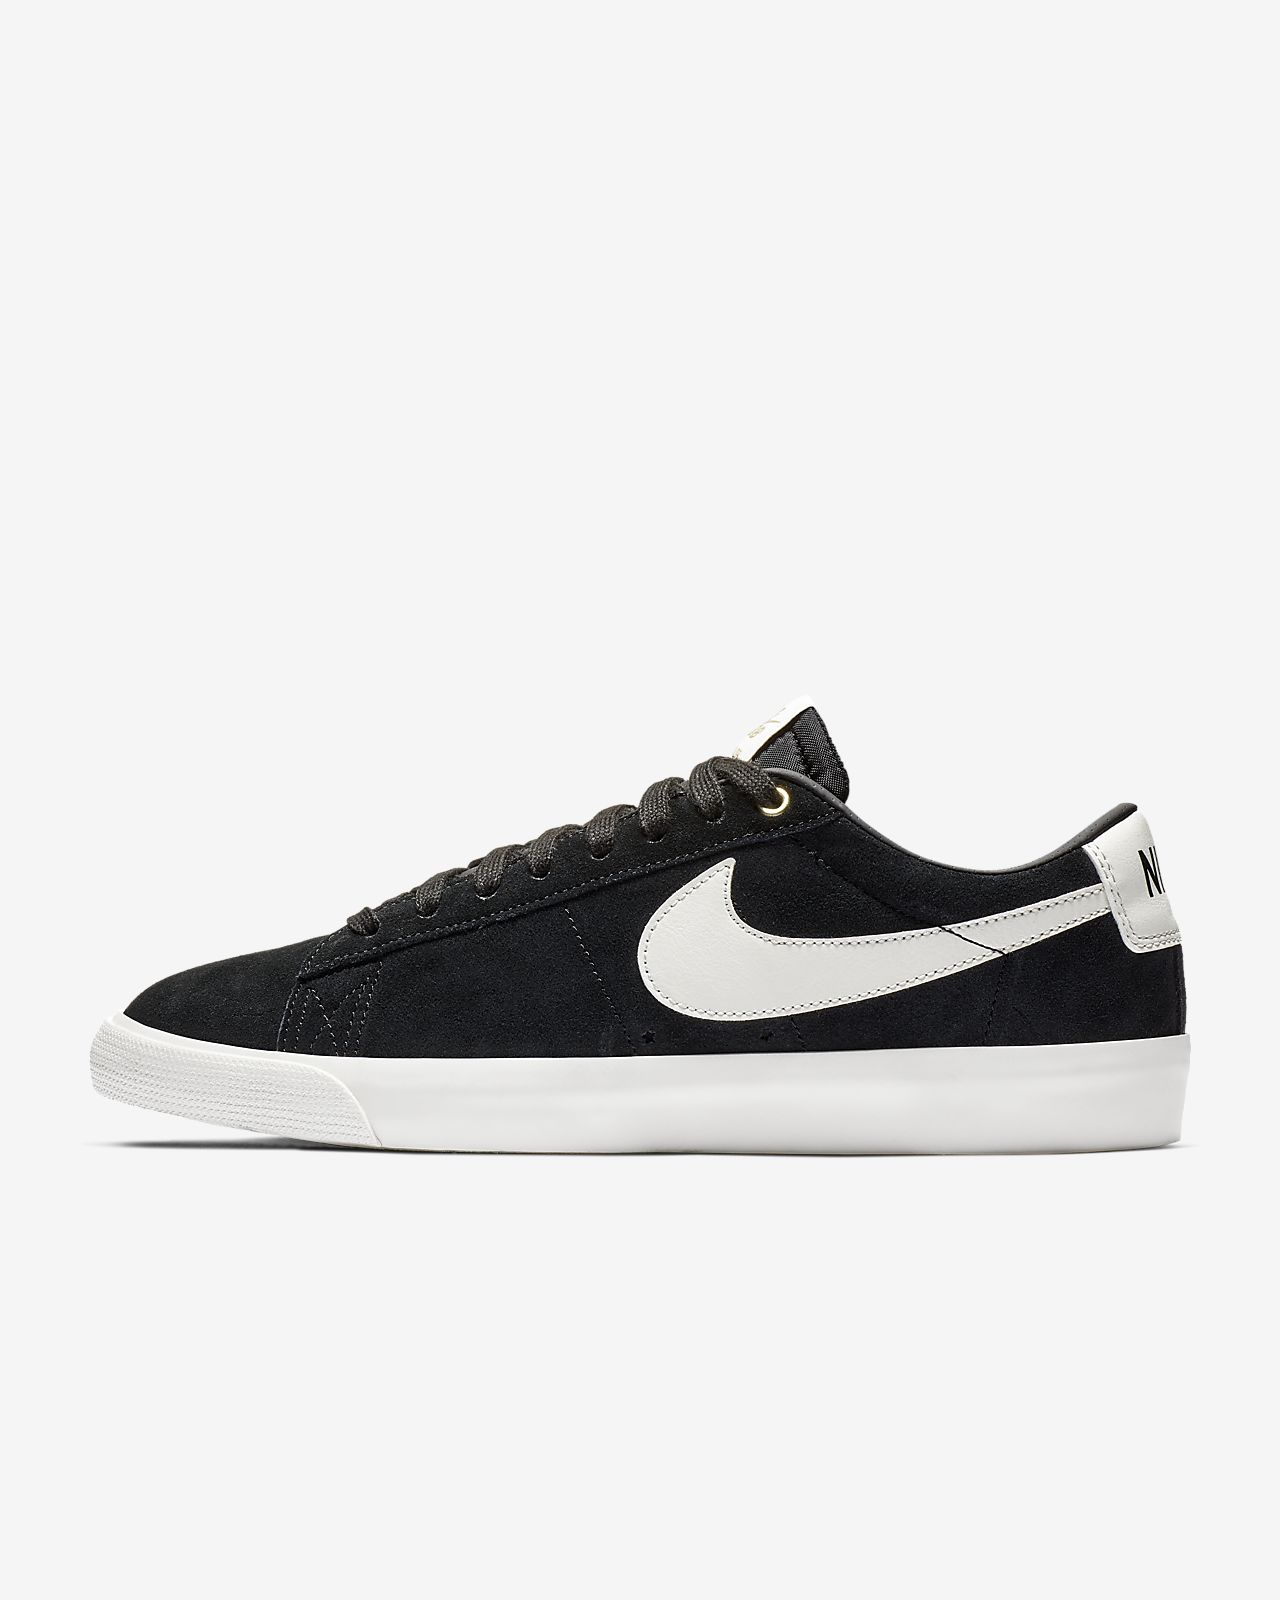 Nike SB Zoom Blazer Low GT 男/女滑板鞋